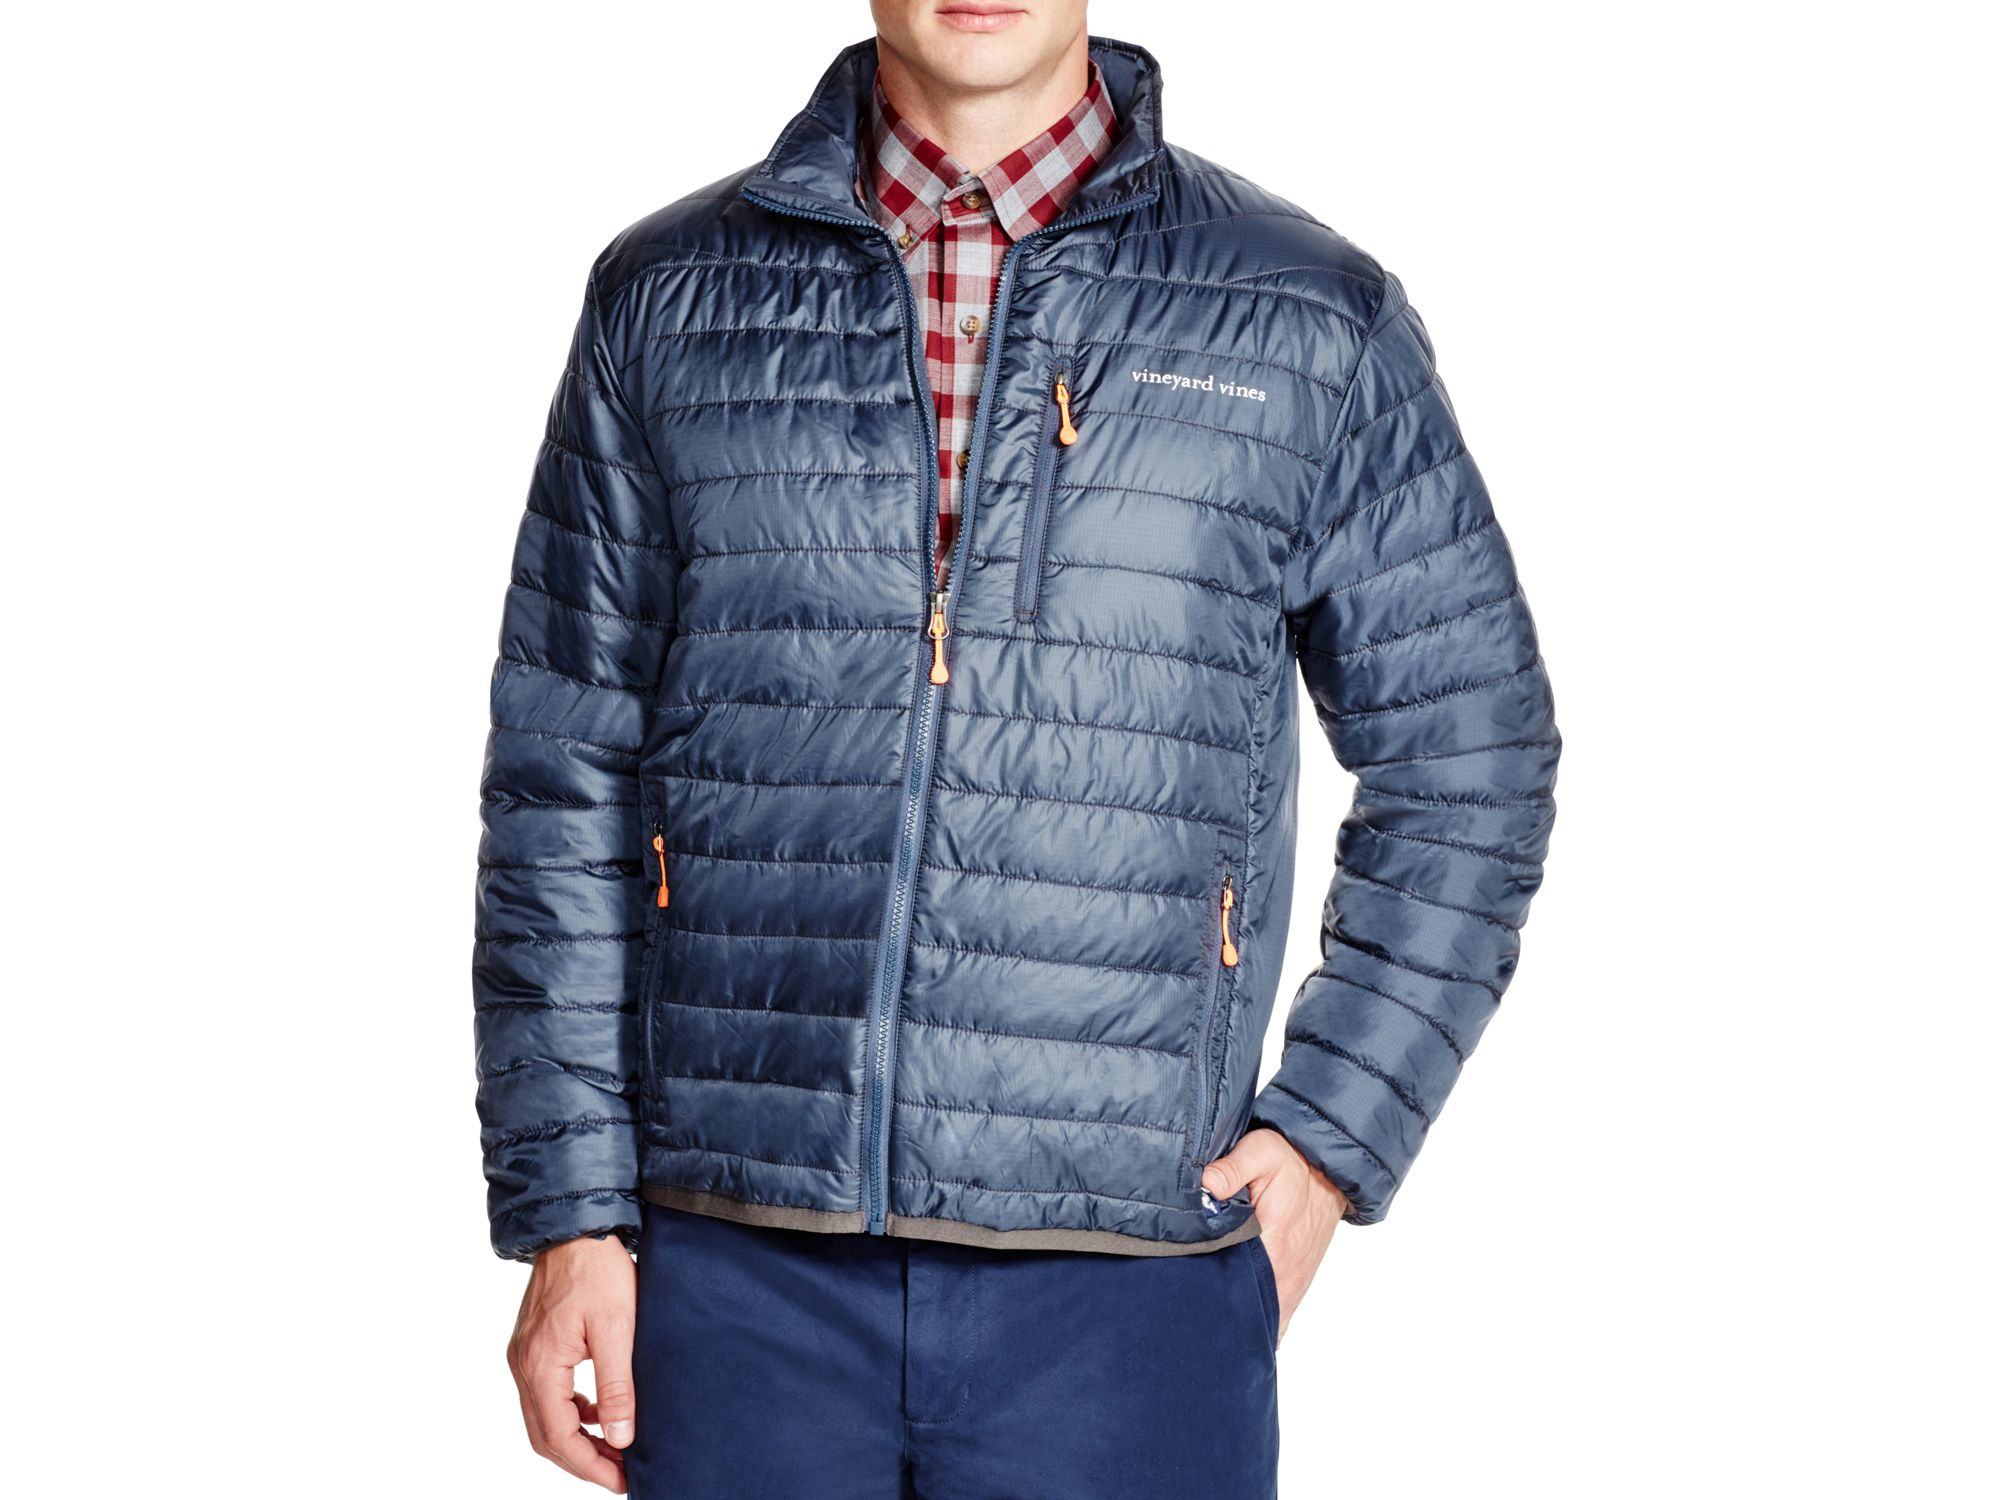 Lyst Vineyard Vines Mountain Weekend Jacket In Blue For Men